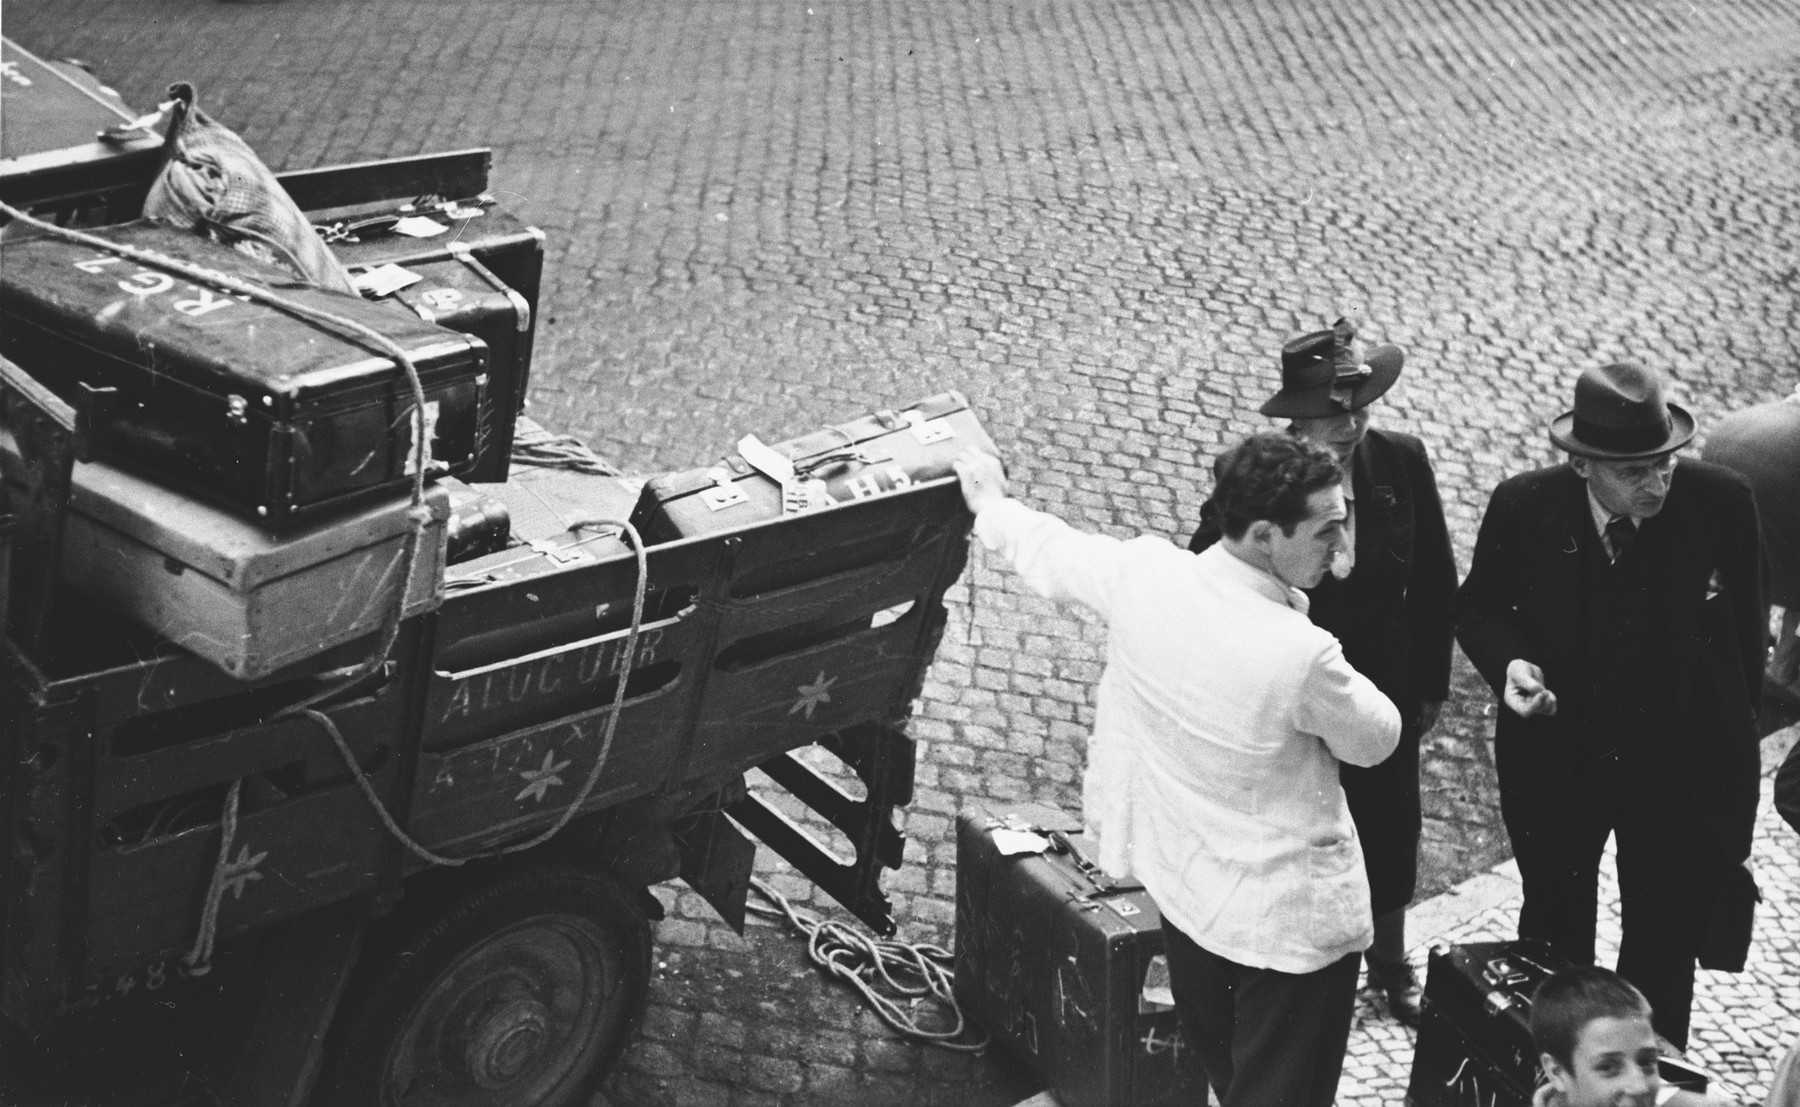 The suitcases of newly arrived Jewish refugees are loaded onto the back of a truck in Lisbon.